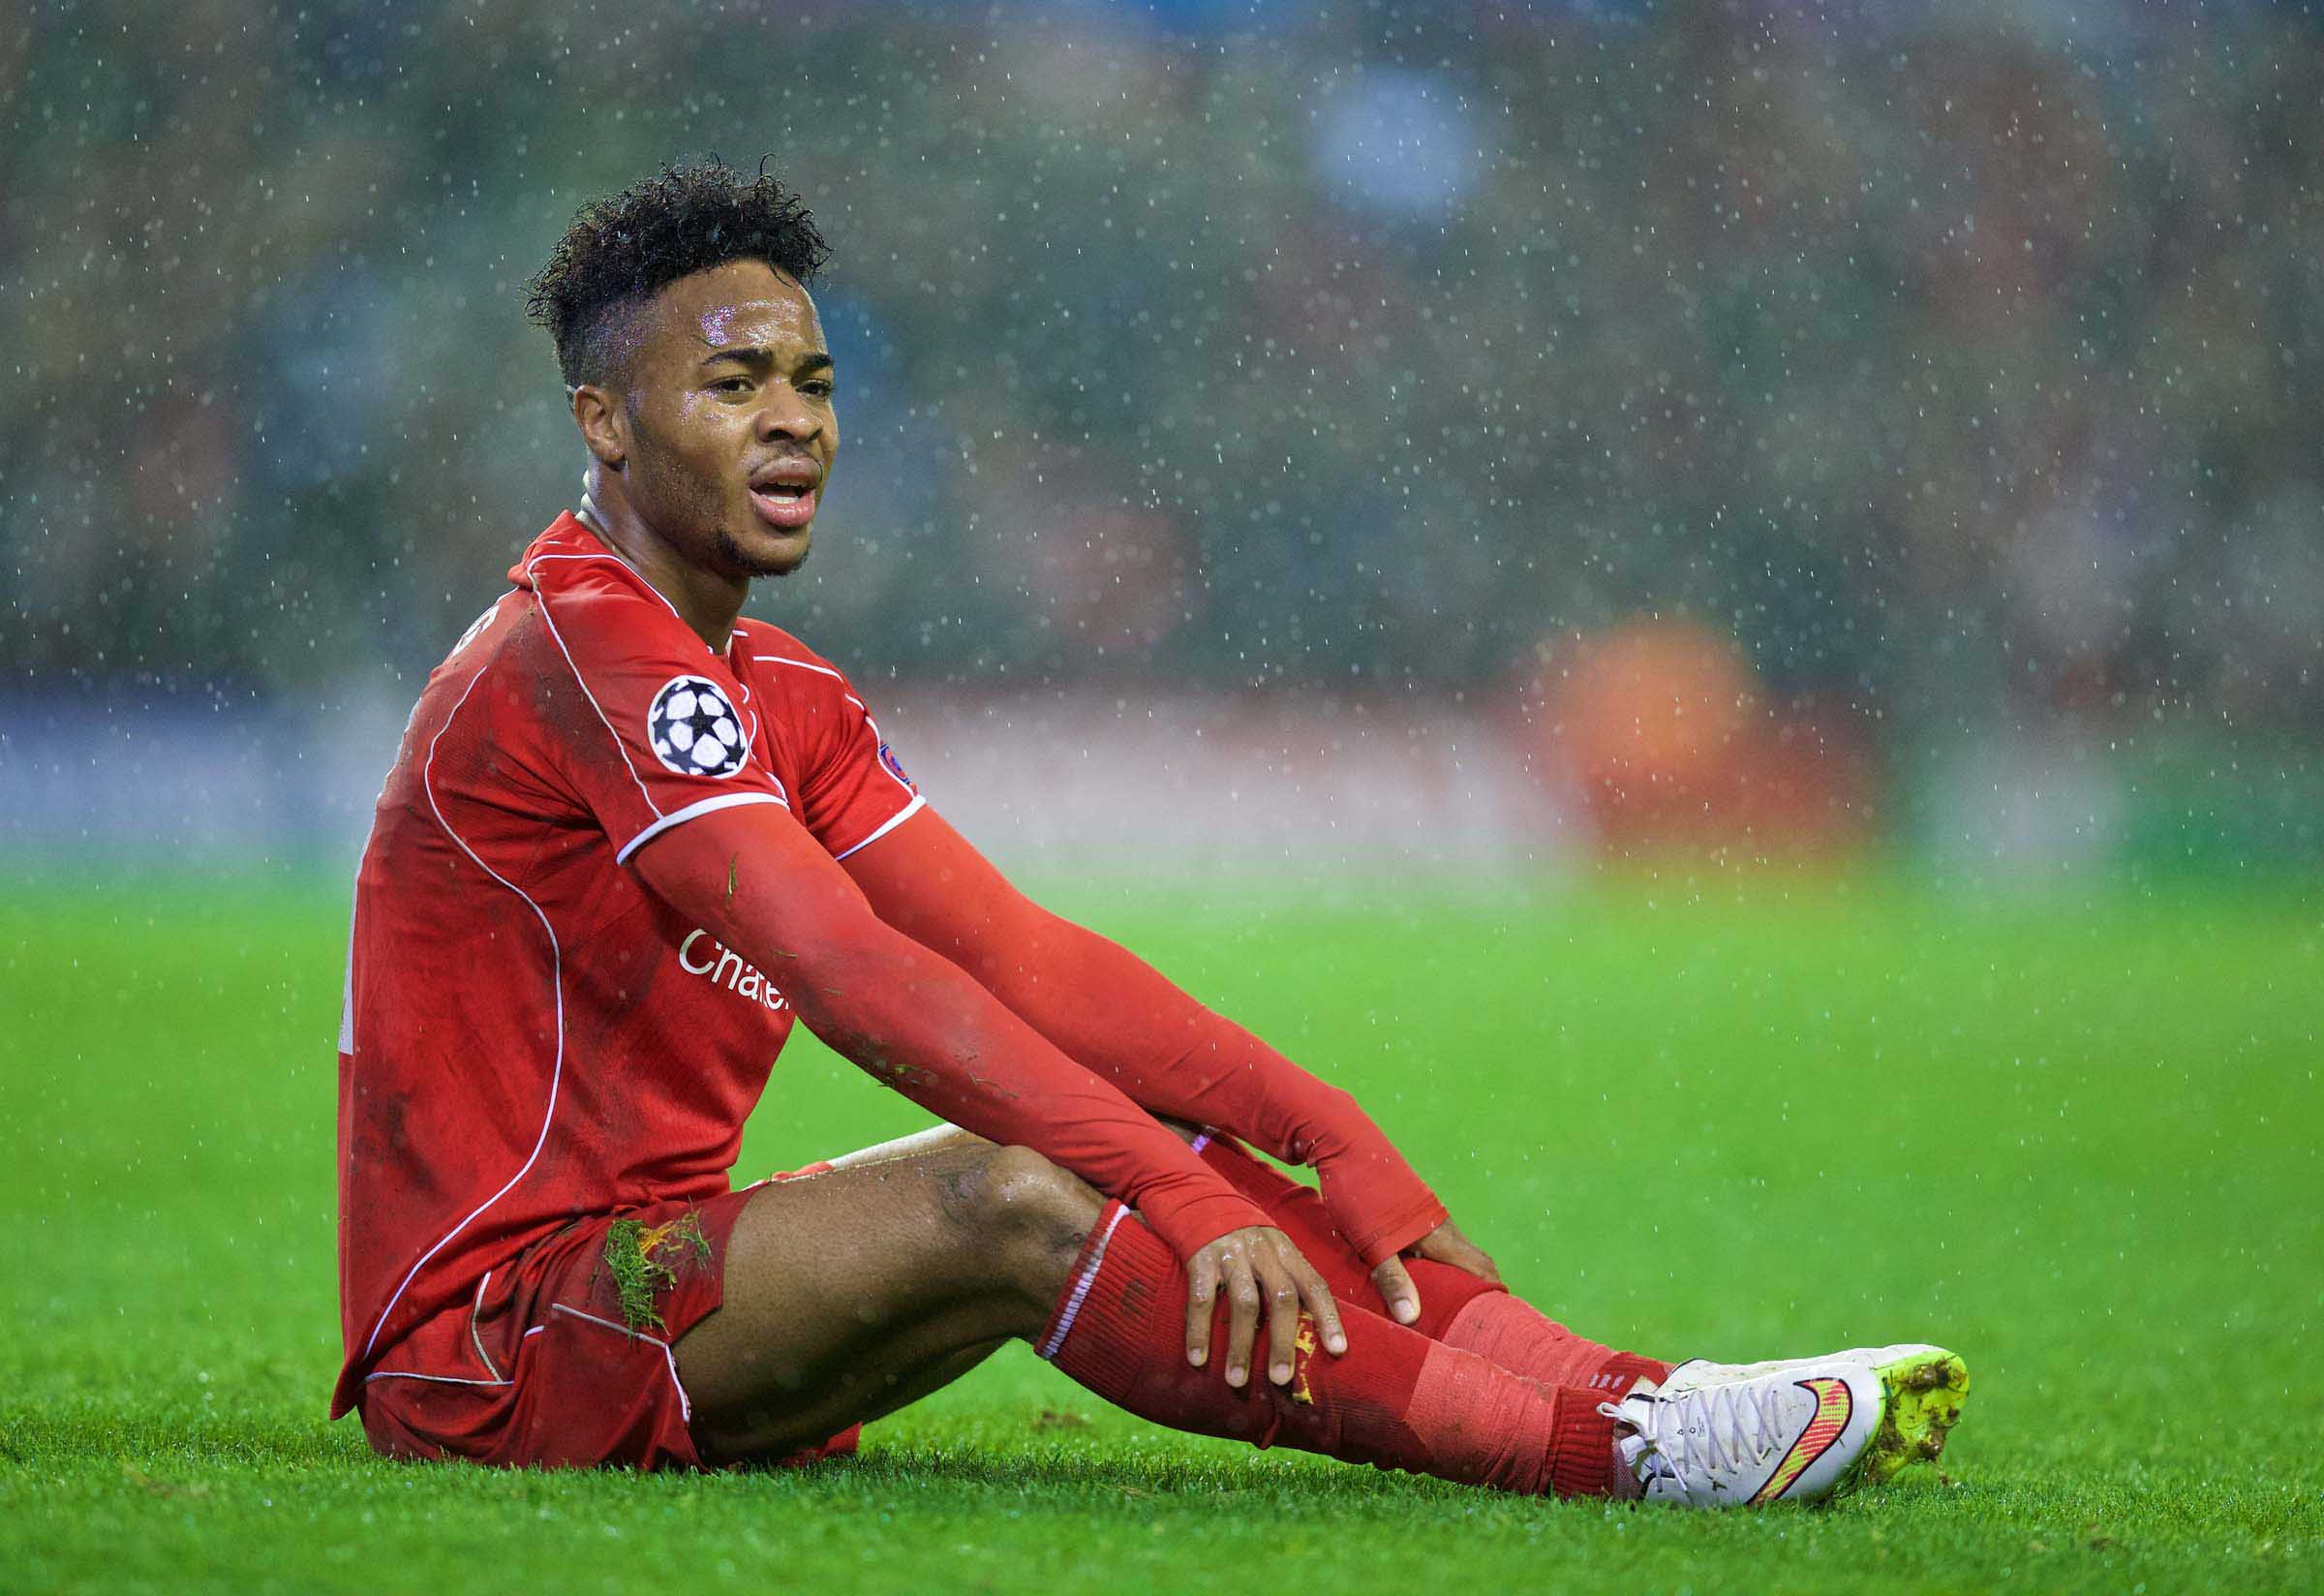 RAHEEM STERLING AND LIVERPOOL: THE COST OF EVERYTHING AND THE VALUE OF NOTHING